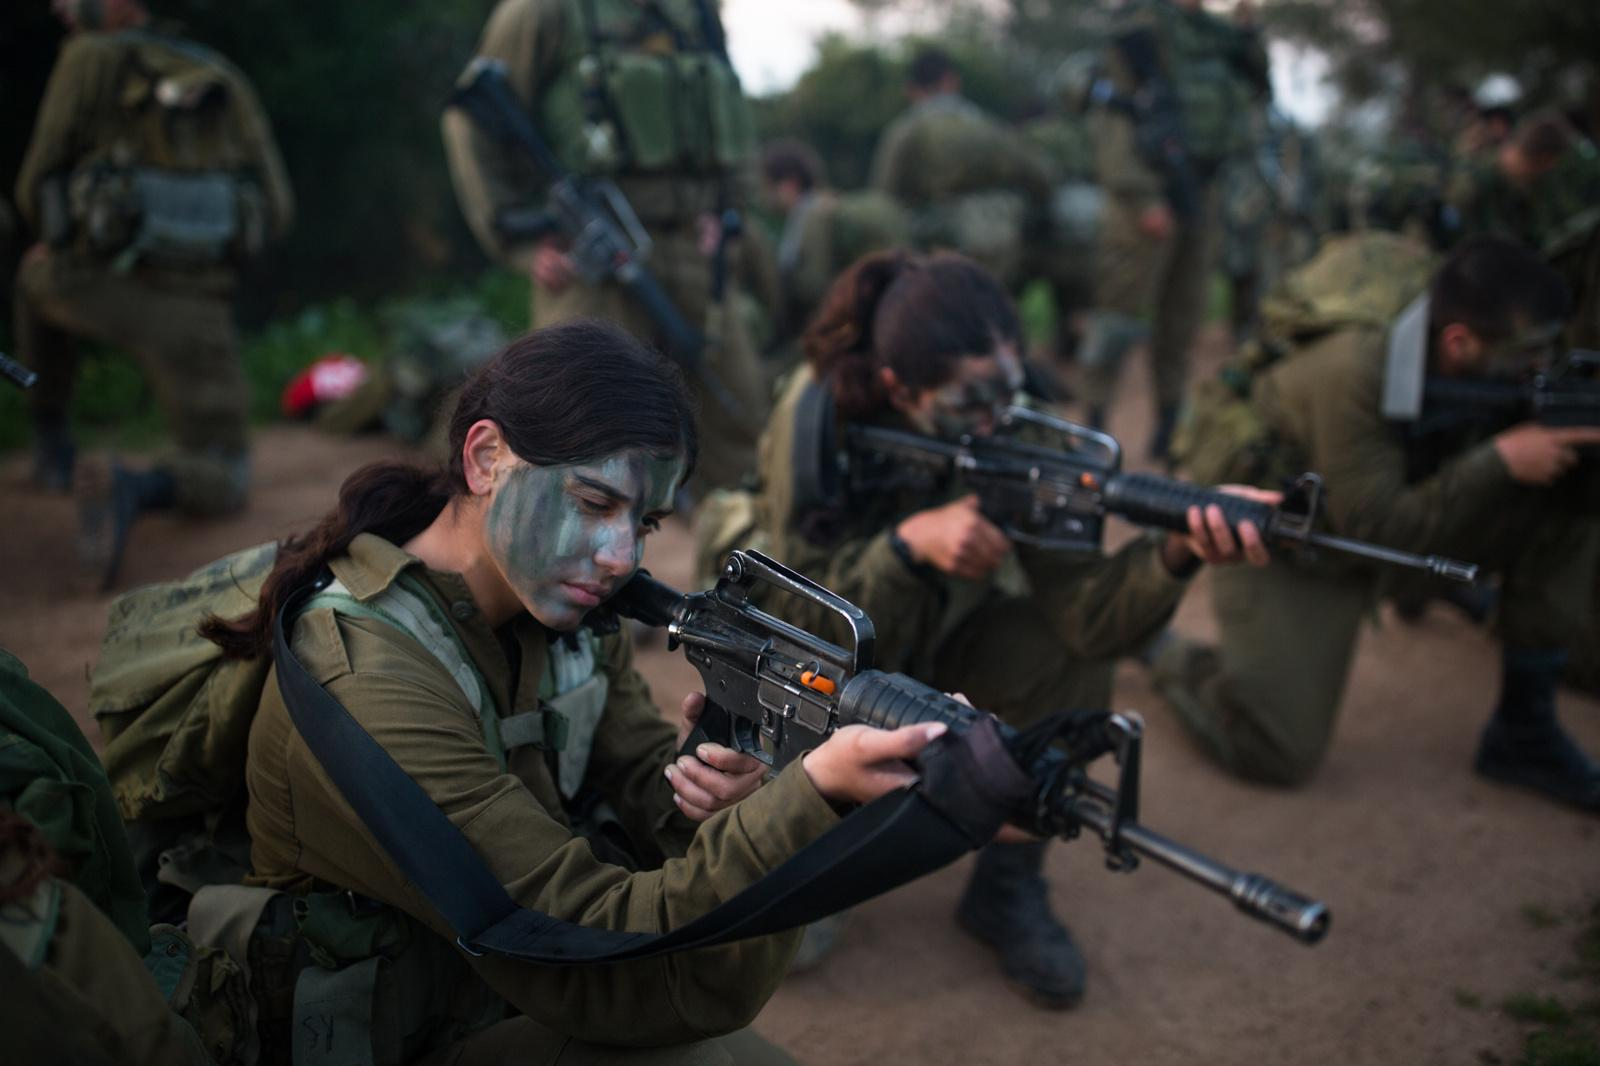 BINYAMINA, ISRAEL - MARCH 08, 2017: Soldiers from the Artillery Corps line up holding their rifles during a baret march at the end of their basic army training on March 08, 2017, near the Northern town of Binyamina, Israel. Around 600 soldiers participated in the march of around 25km, that lasted from midnight until the early morning hours.